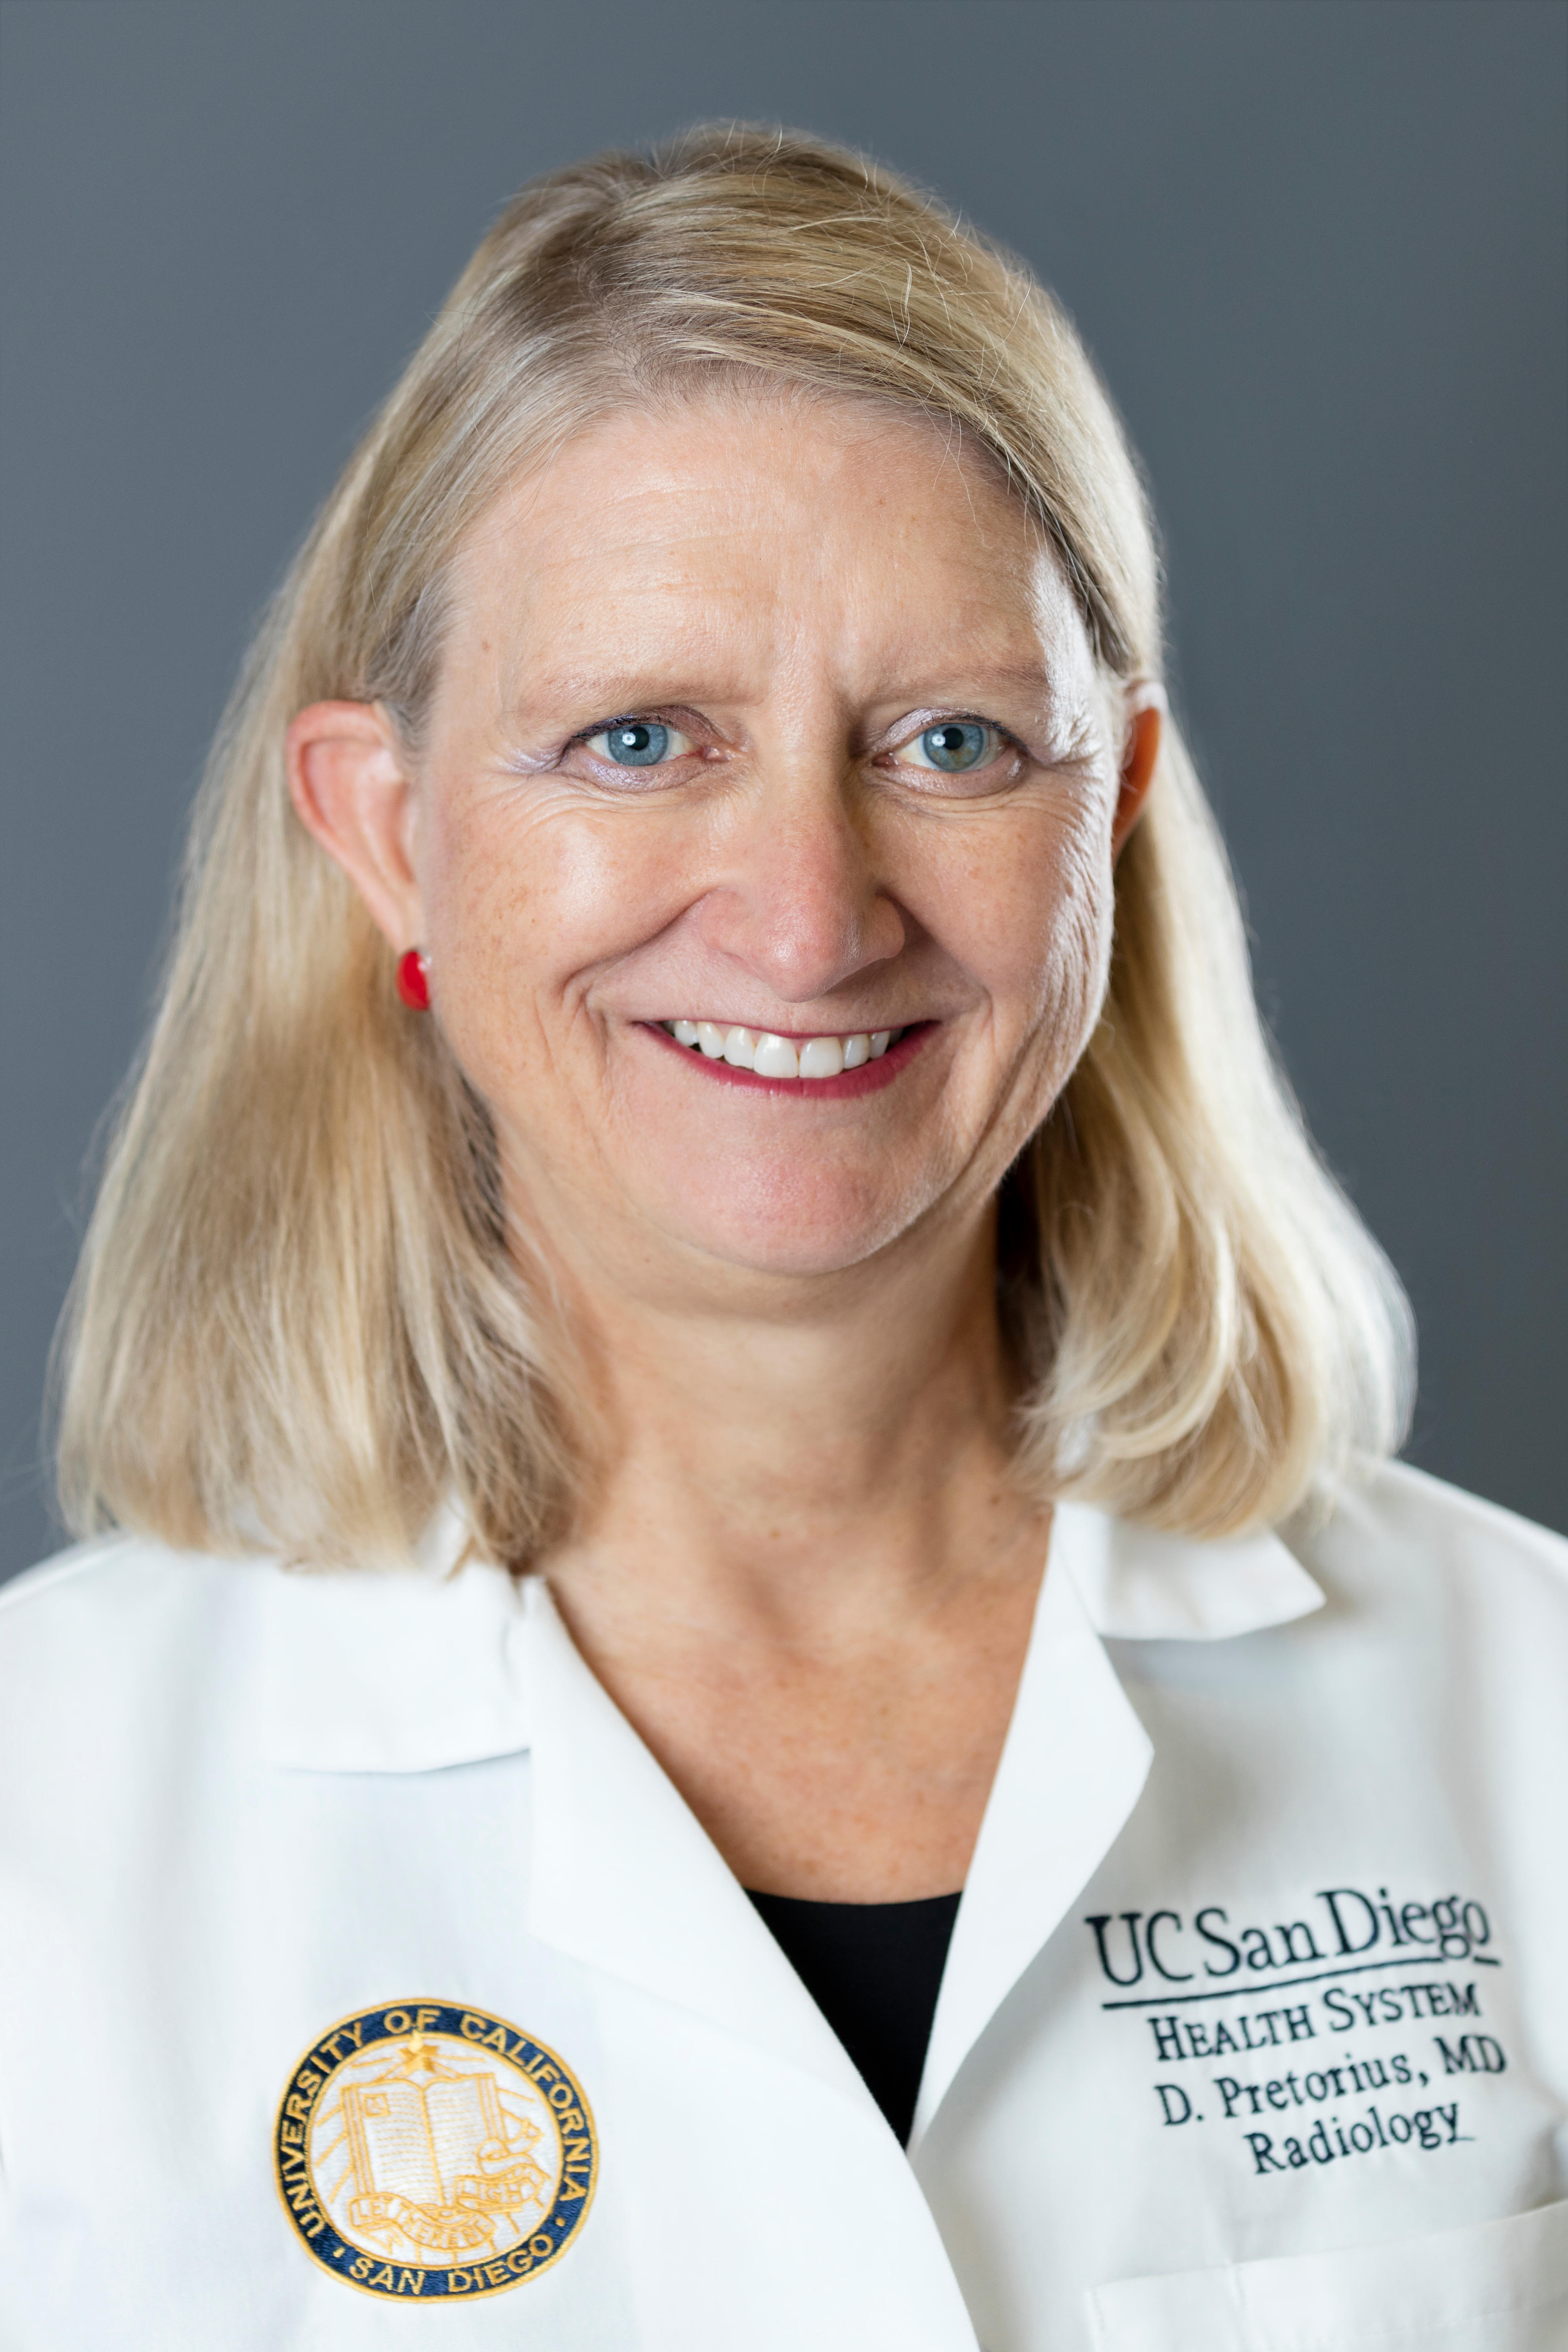 Image For Dr. Dolores H. Pretorius MD